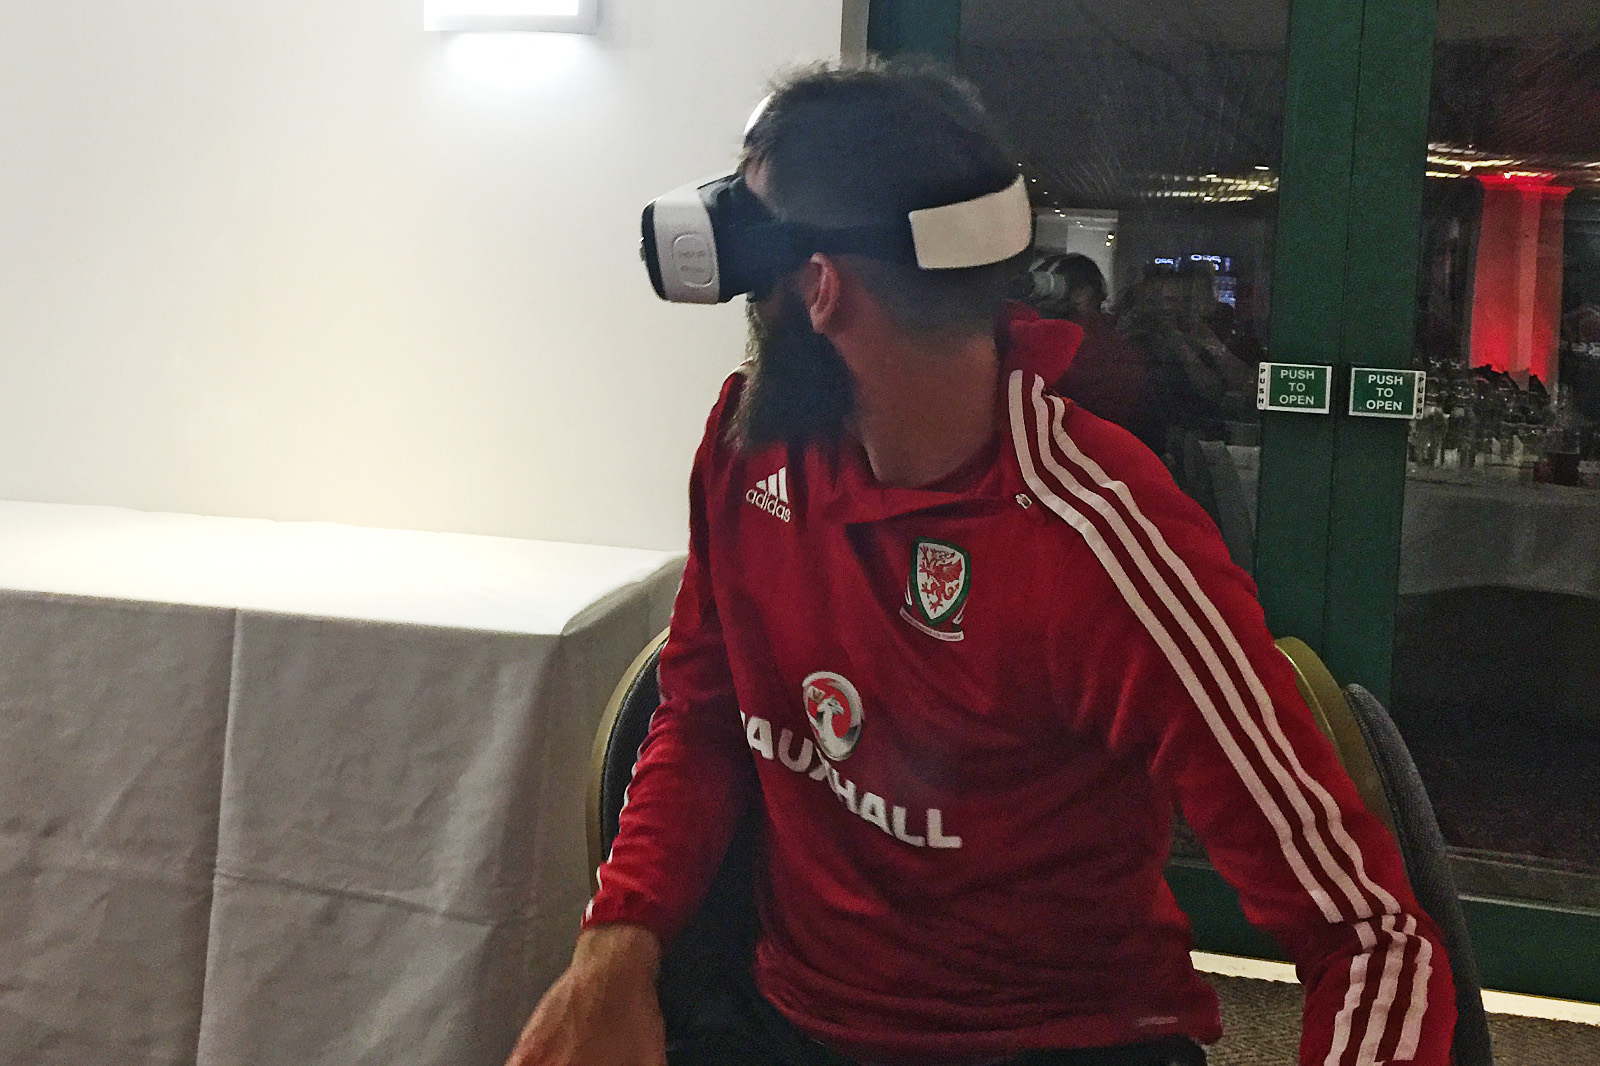 360 video vr wales